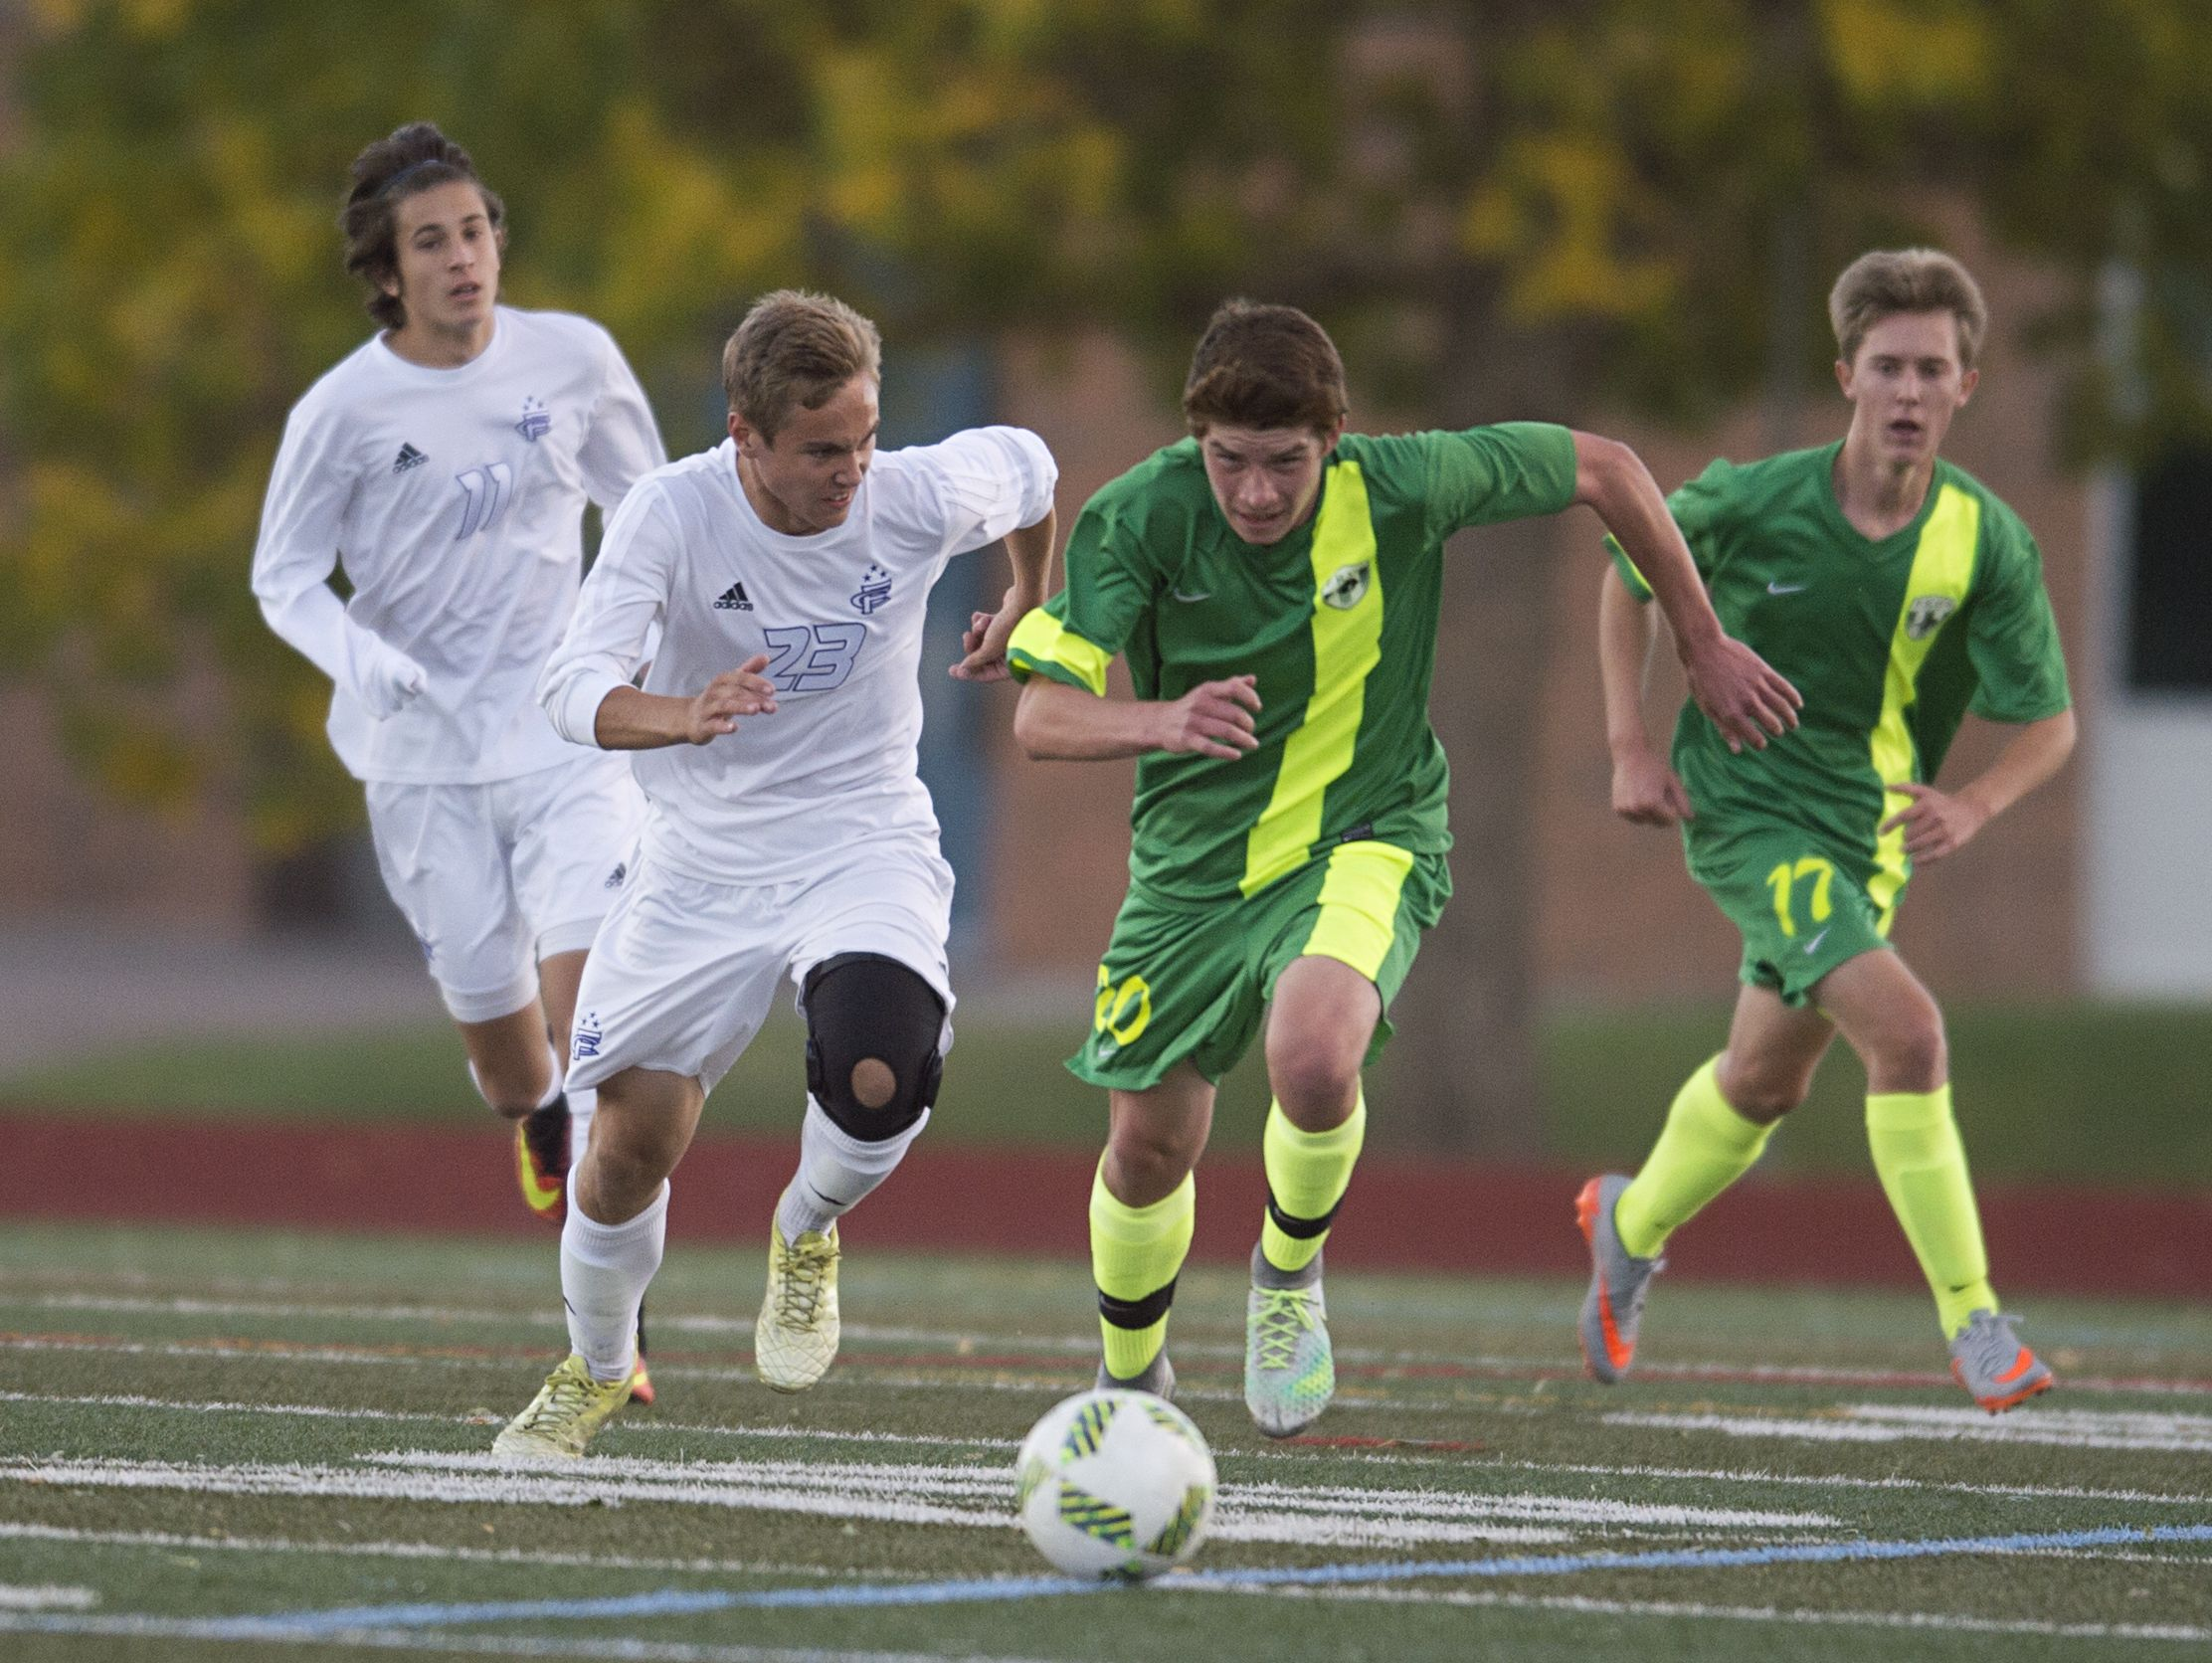 Alec Fronapfel of Fort Collins and Tyler Hause of Fossil Ridge High School race towards the ball during a game at French Field Tuesday, October 4, 2016.